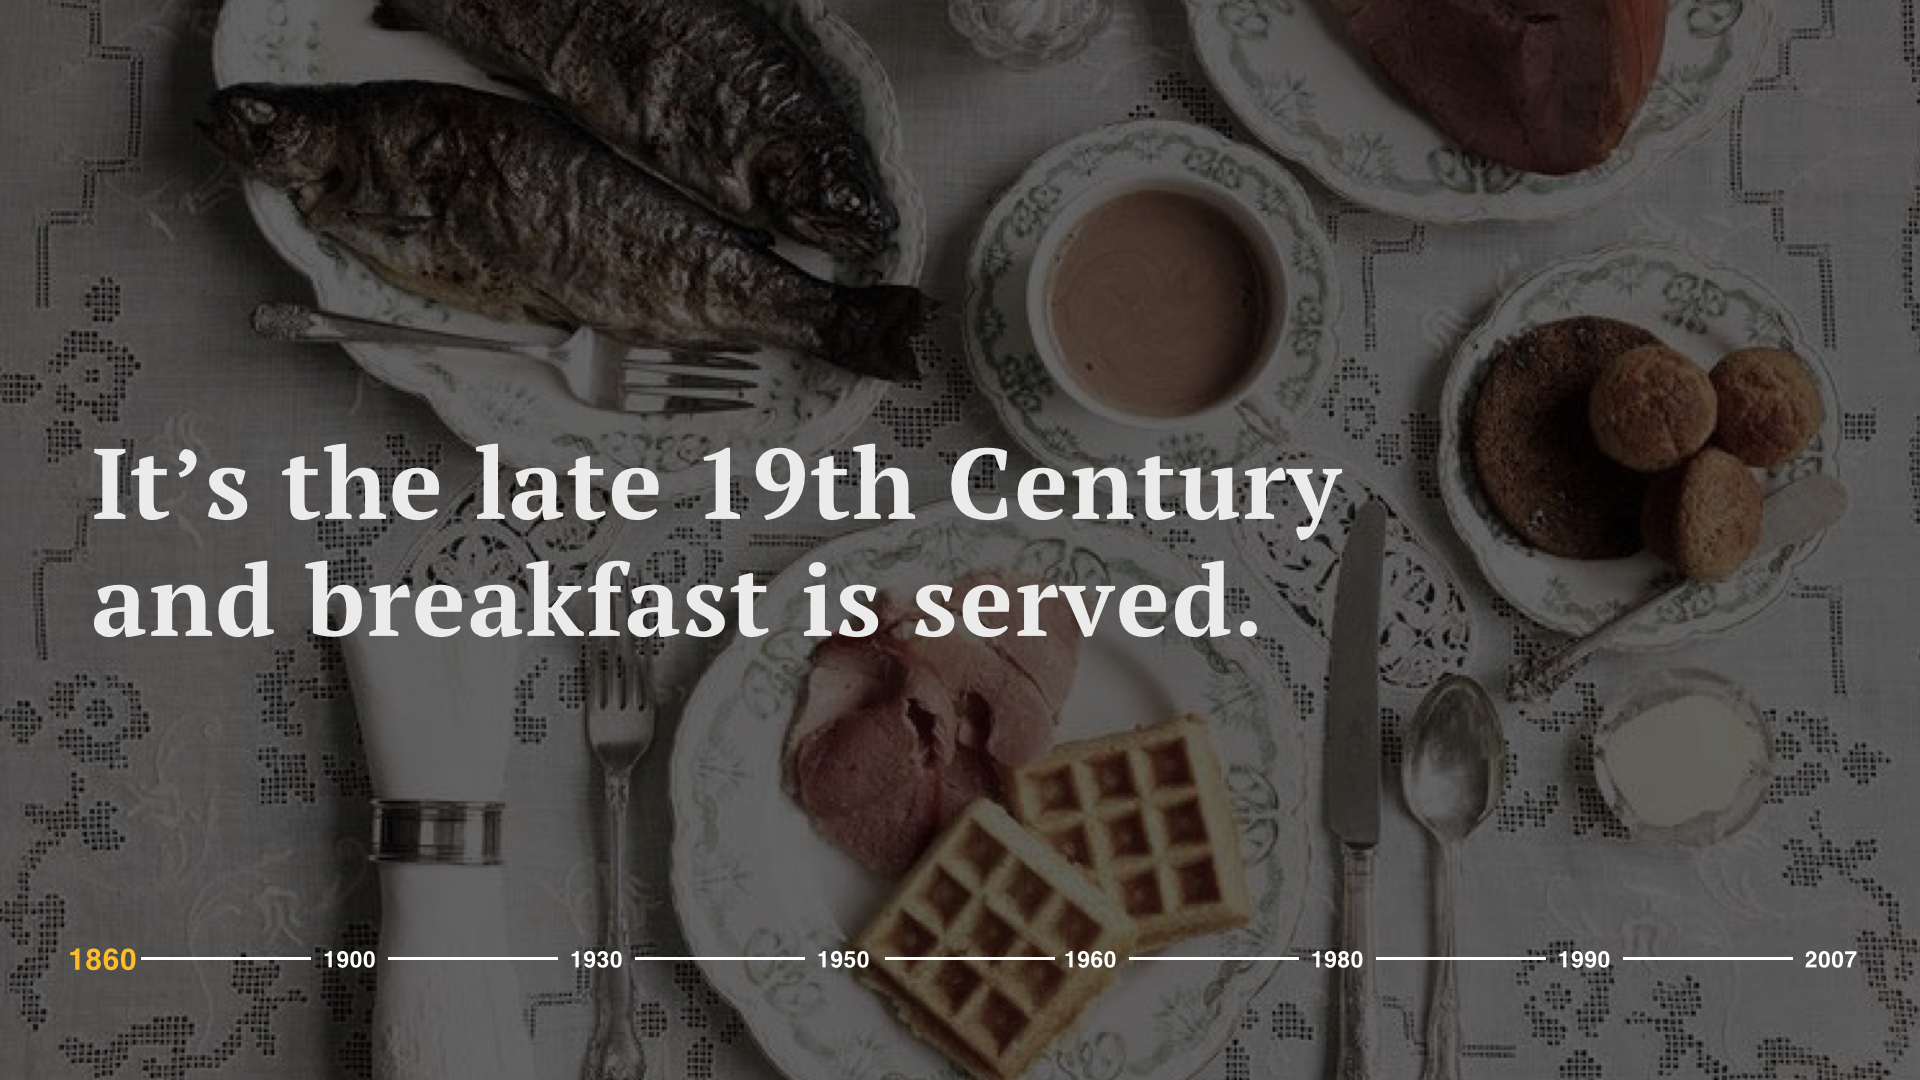 It's the late 19th century and breakfast is served.  In America at this time and into the early 20th century, consumption was heavy in animal fats and often cured meats. Meals were high in salt and contained a lot of sugar. And back then, carbohydrates were not frowned upon. Even with porridge and mush these whole grains took hours to melt down into a soft form.   Making breakfast was a big ordeal.